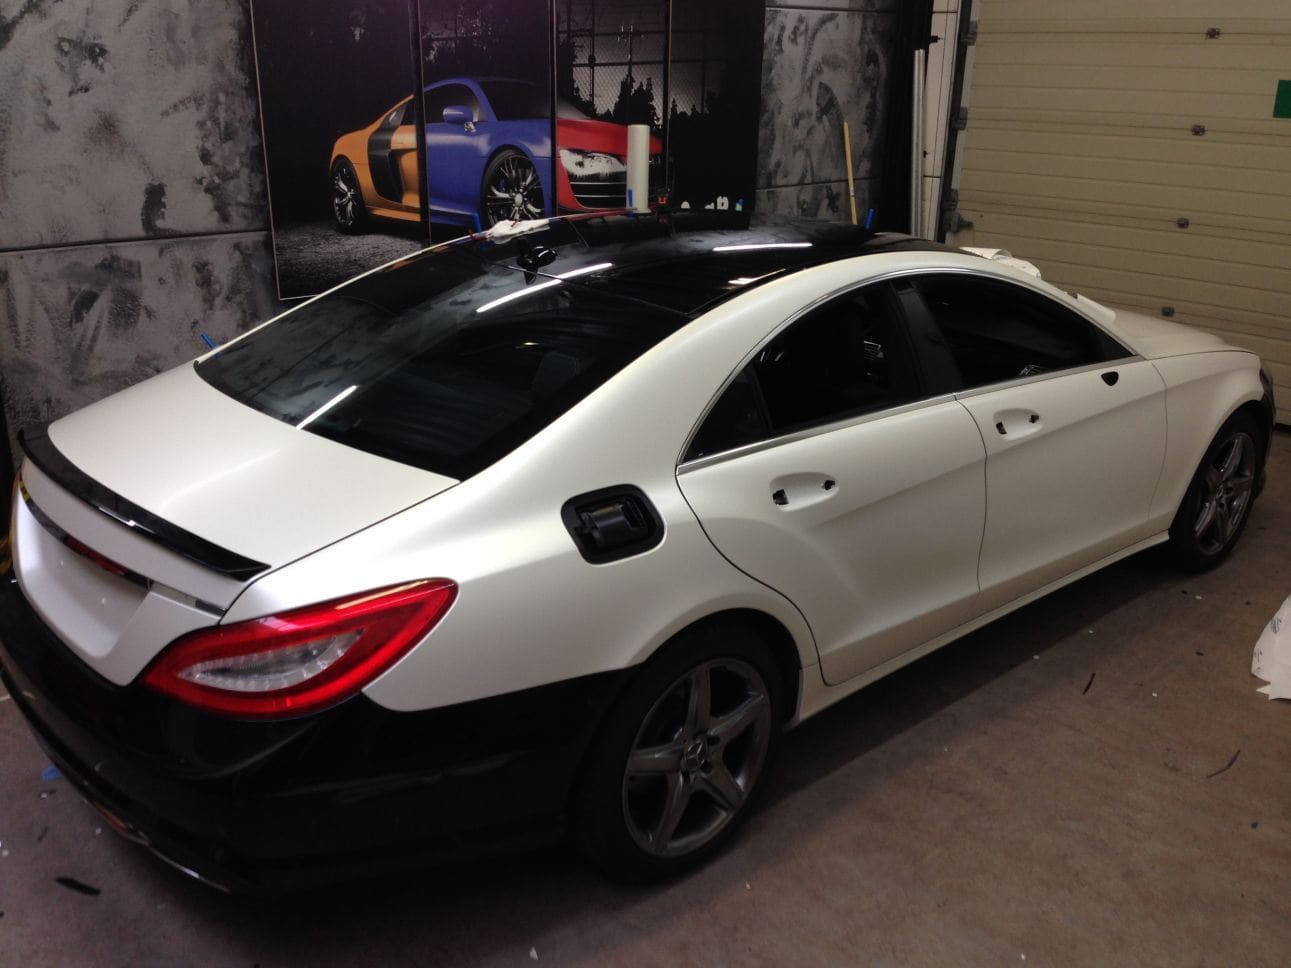 Mercedes CLS met White Satin Pearl Wrap, Carwrapping door Wrapmyride.nu Foto-nr:6179, ©2021